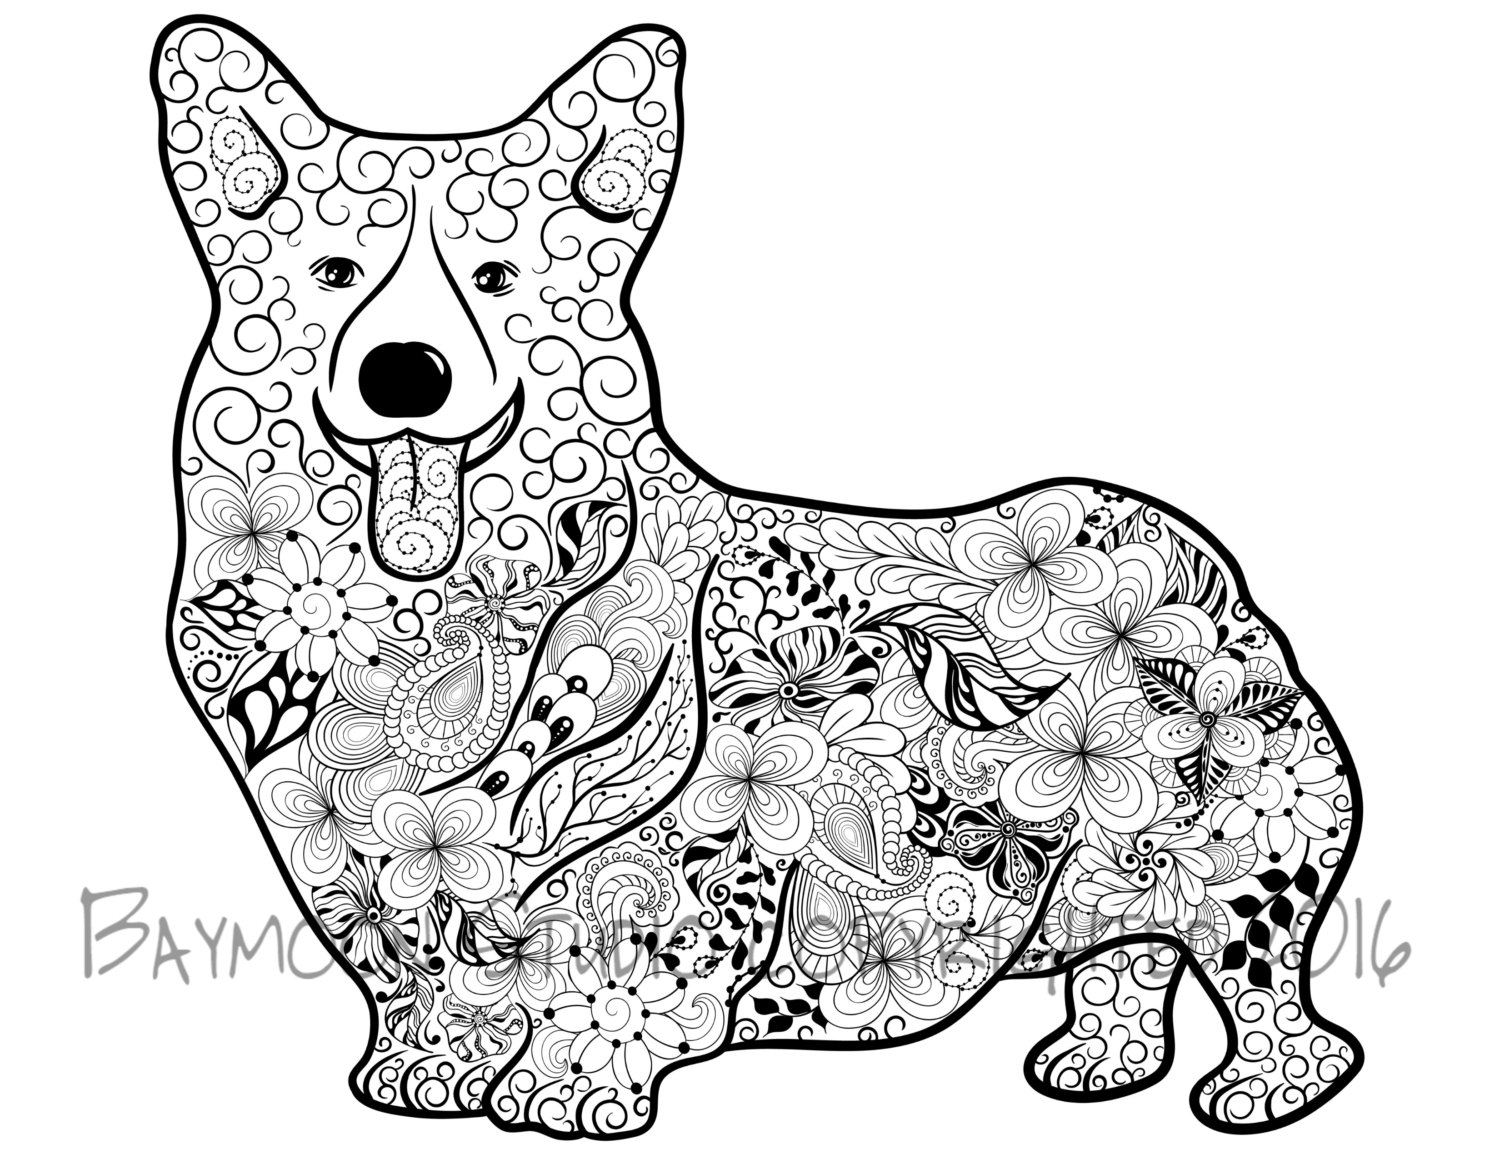 Pembroke Welsh Corgi Coloring Pages